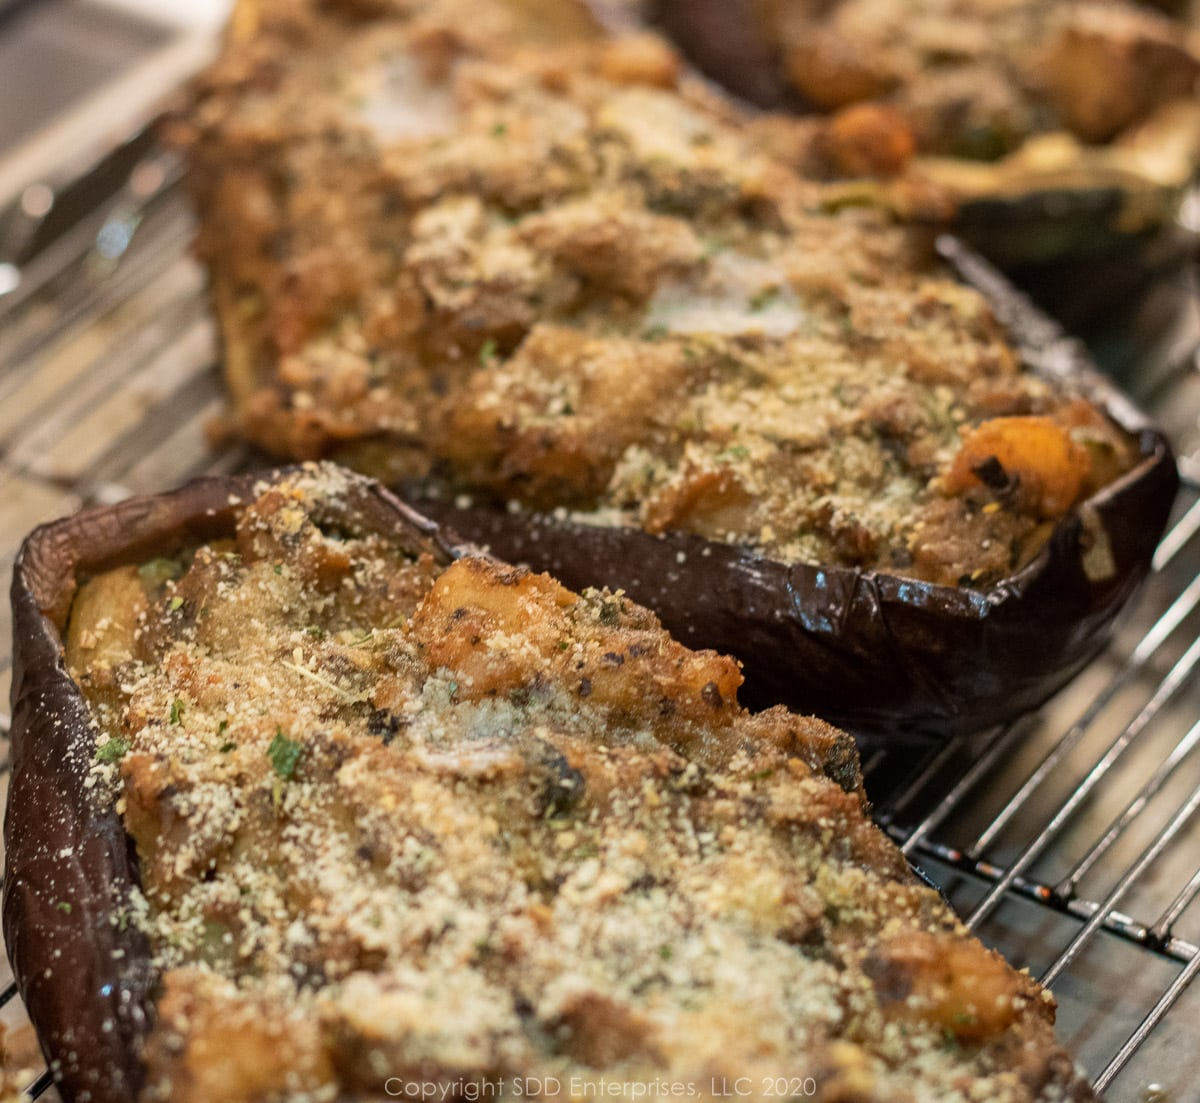 shrimp stuffed eggplant on a cooling rack right out of the oven